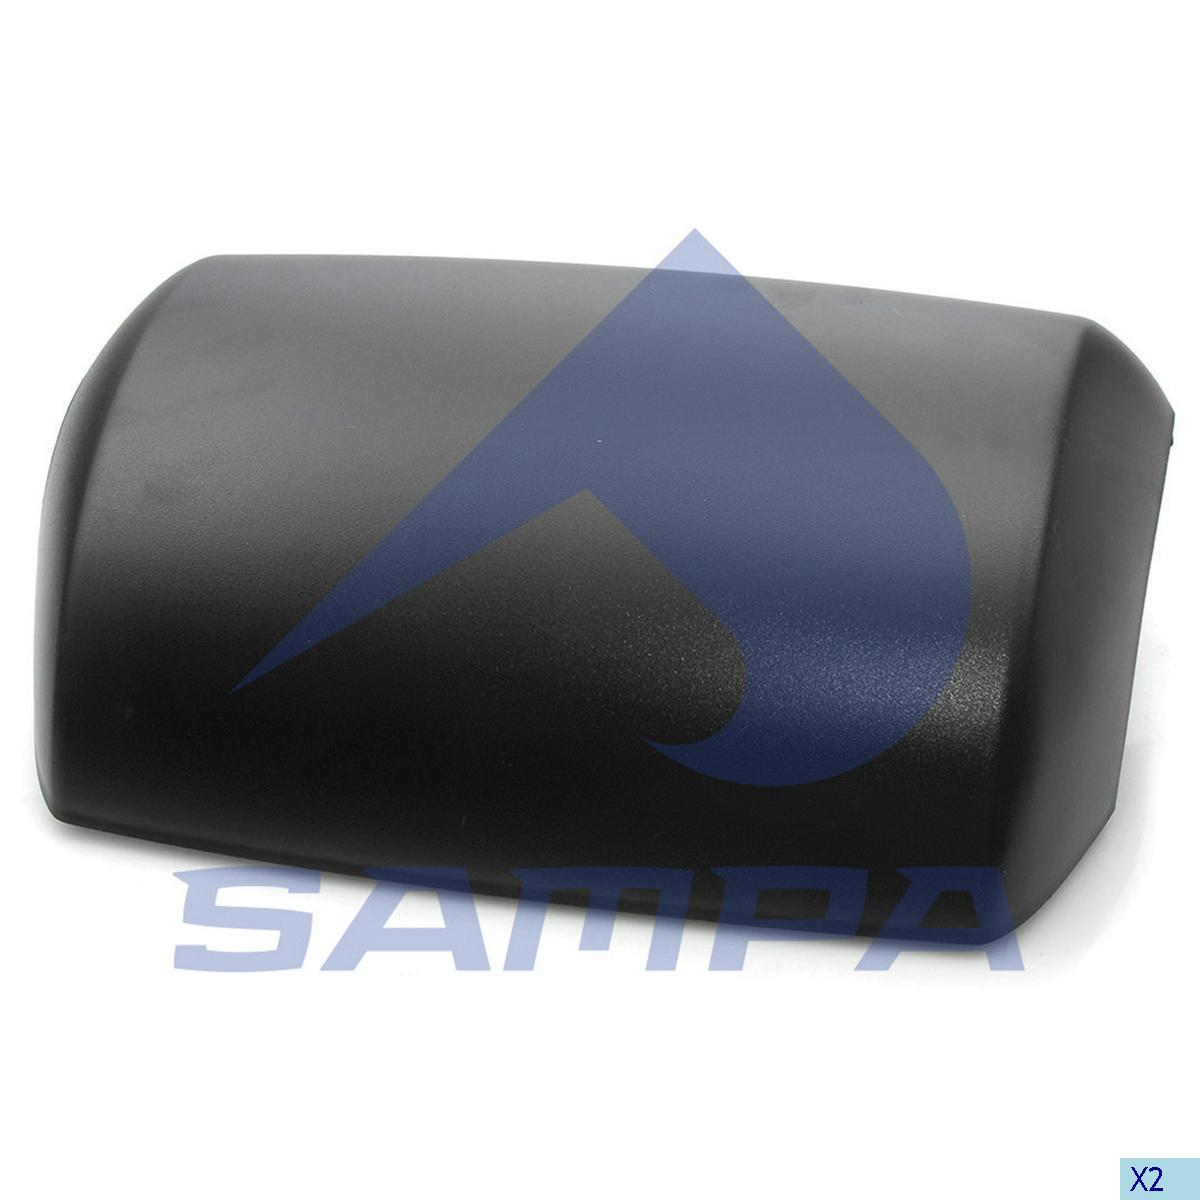 Cover, Mirror, Iveco, Cab